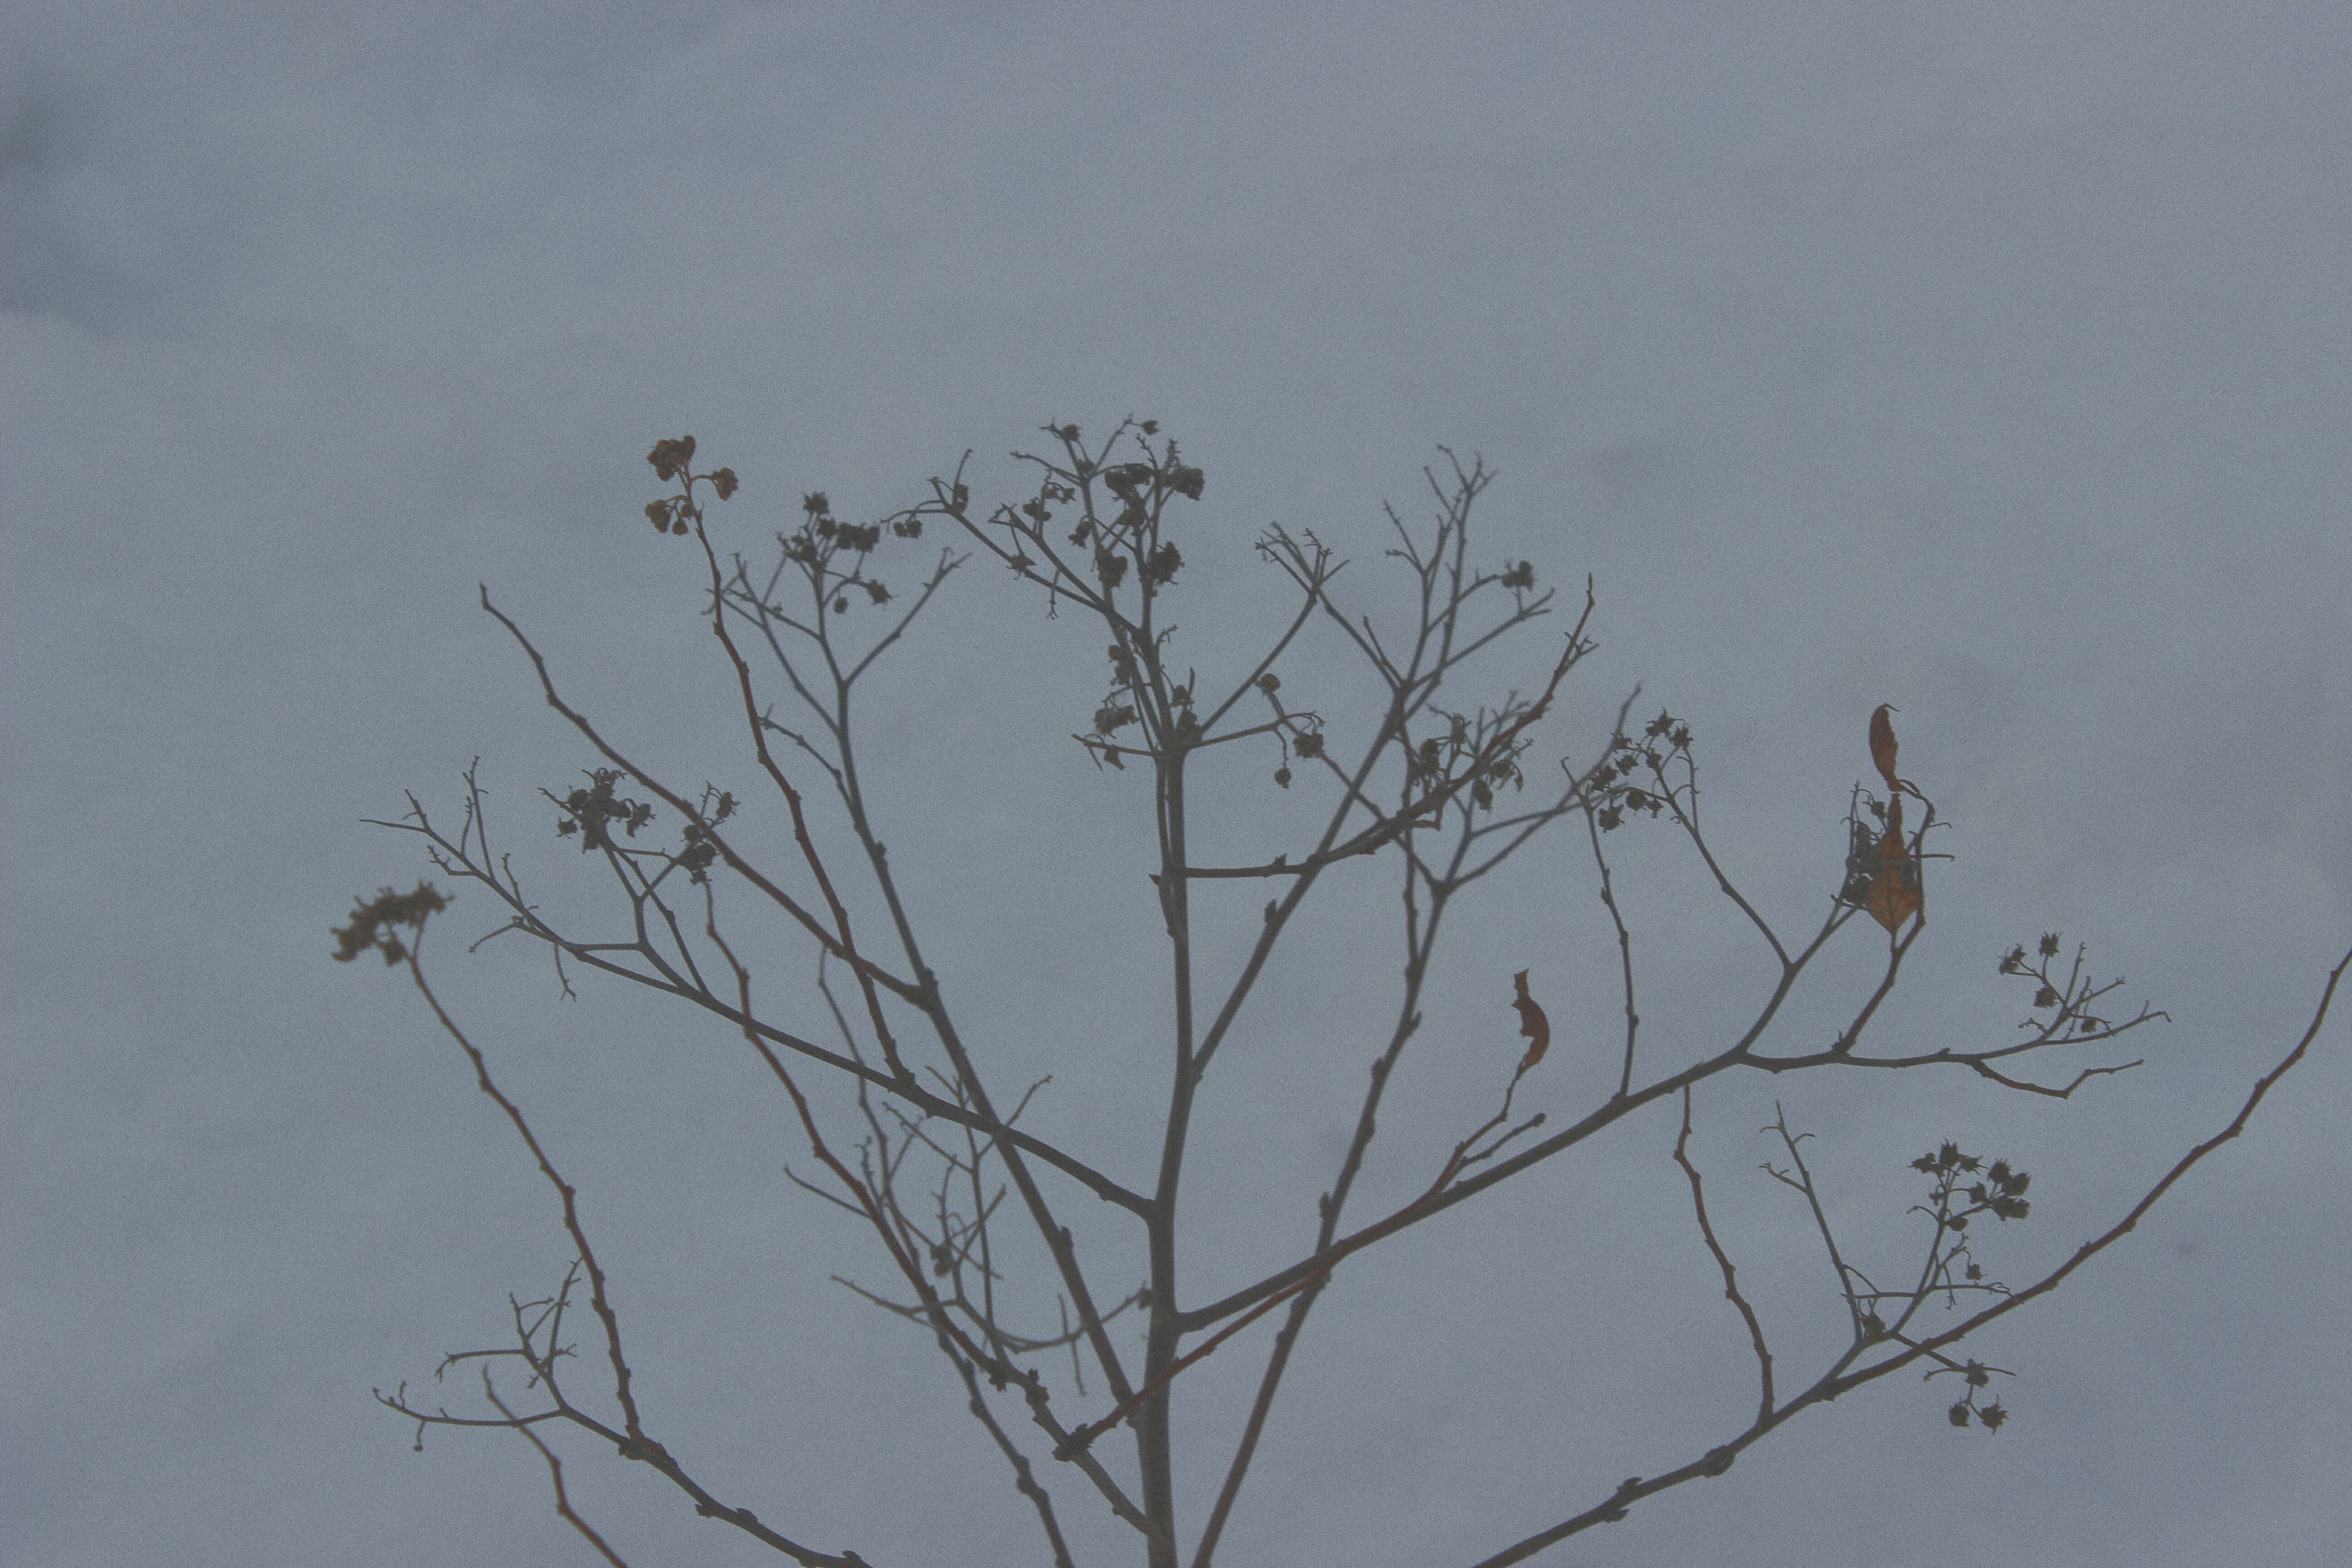 bird, bare tree, animal themes, tree, branch, no people, animals in the wild, nature, perching, sky, outdoors, day, beauty in nature